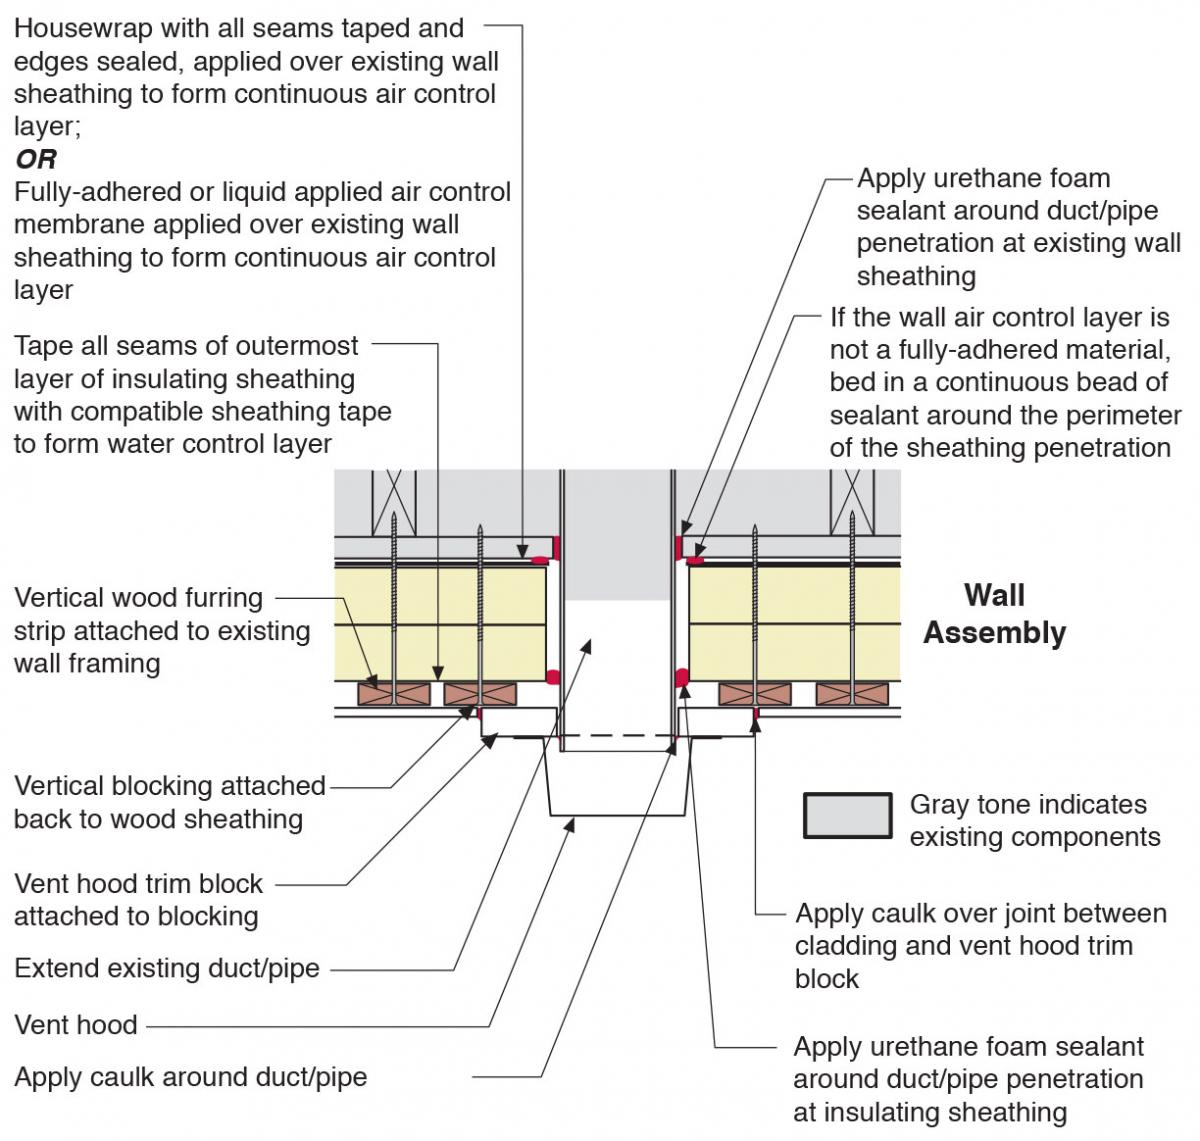 Plan view of duct or pipe penetration through exterior wall showing flashing and air sealing details